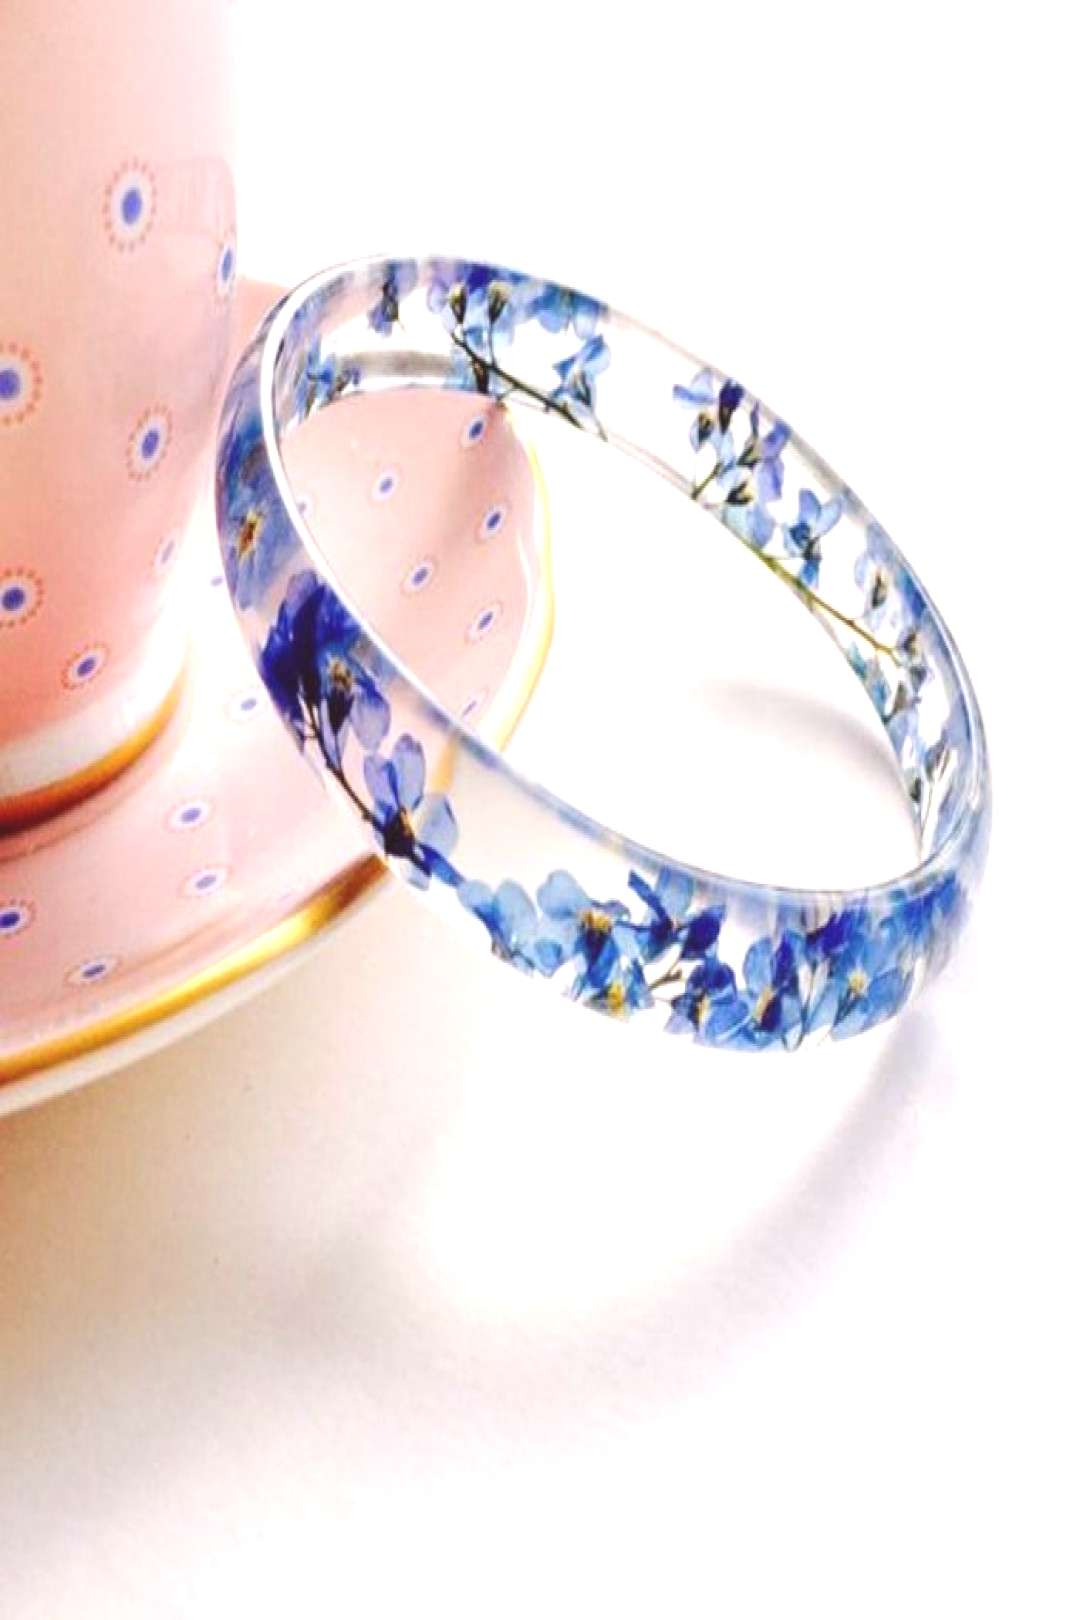 ▷ 10 great ideas for an unforgettable farewell party - gift for woman, bracelet, forget-me-not,